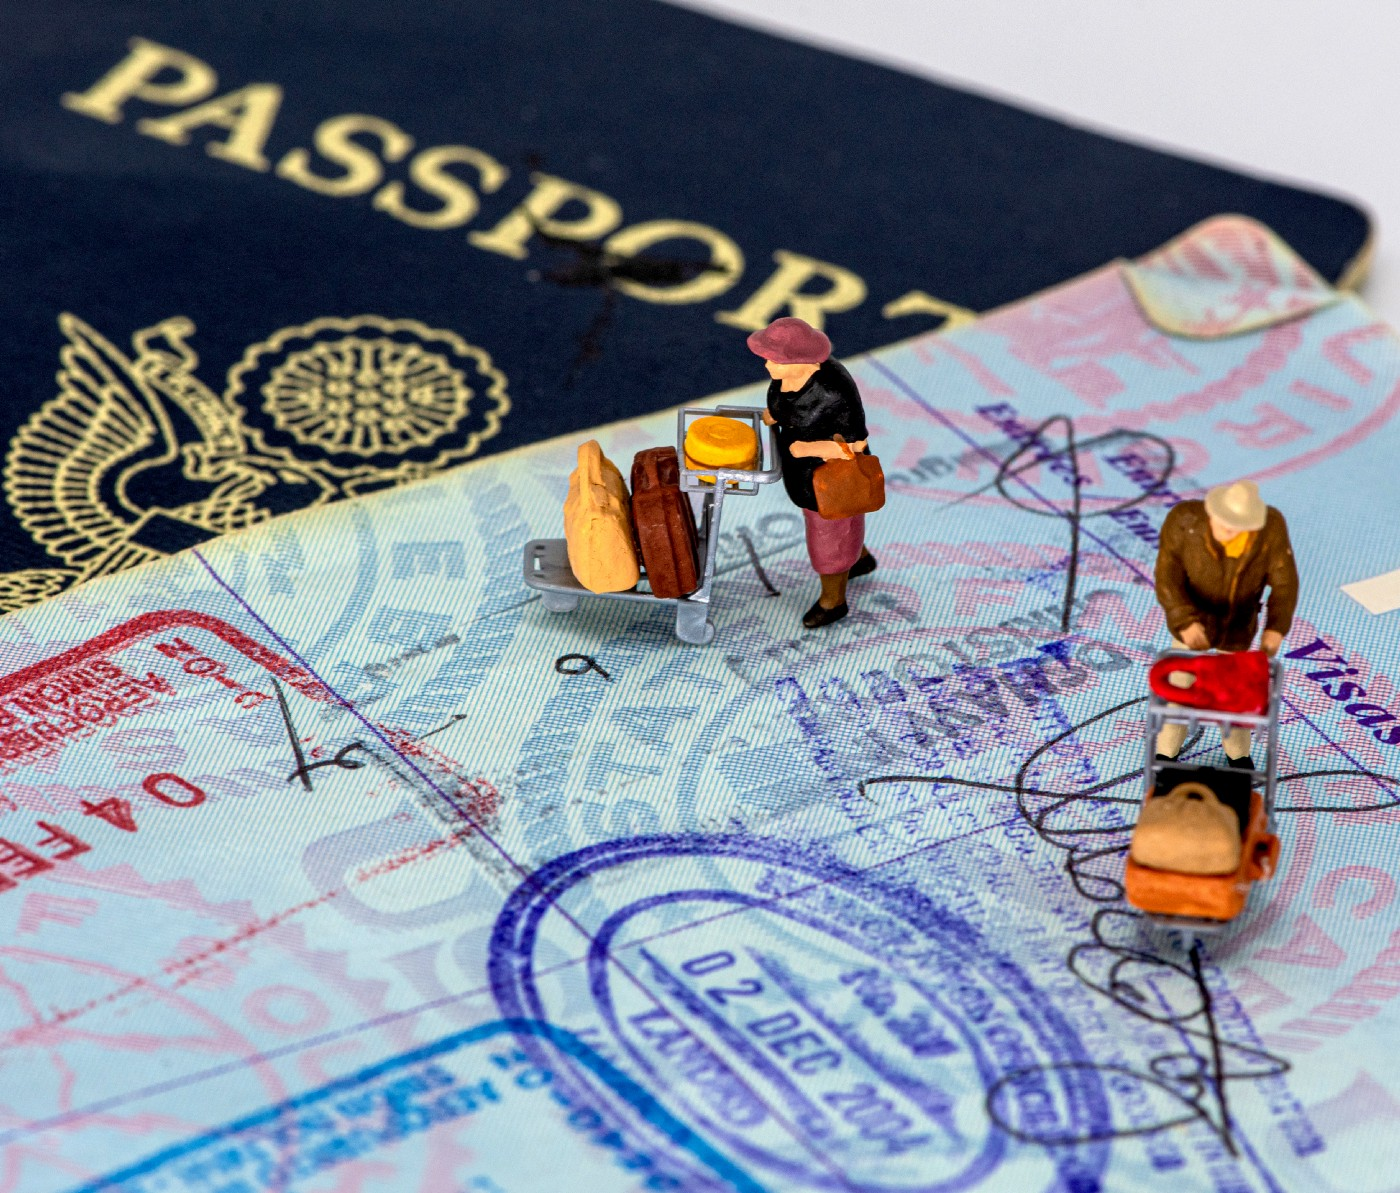 open US passport with miniature figures and entry/exit stamps